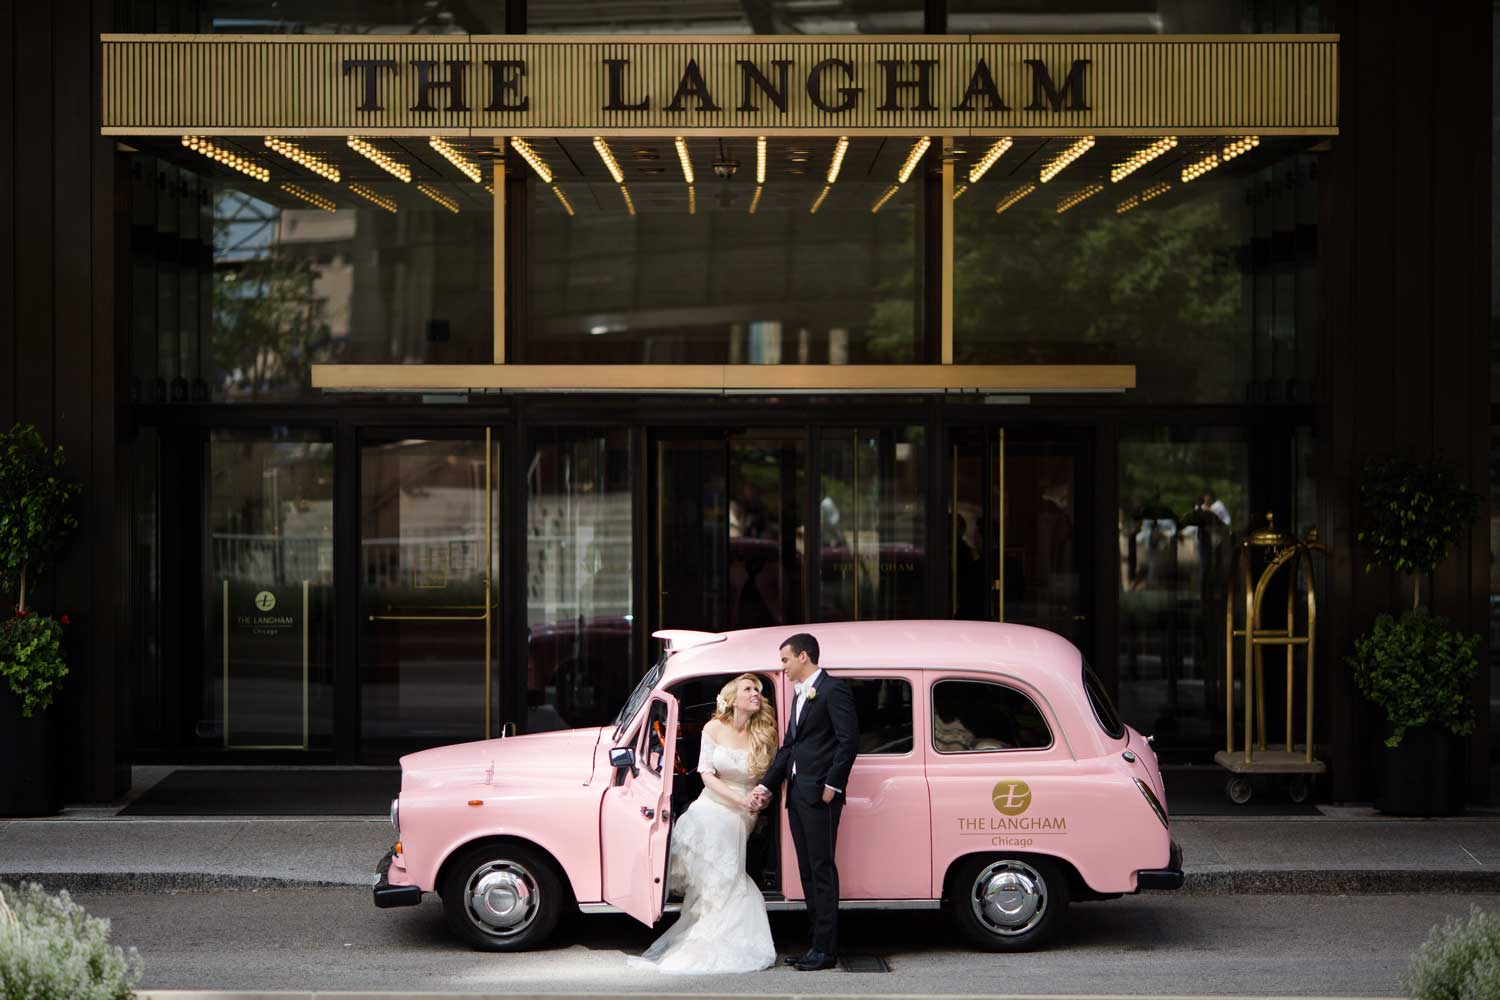 Bride and groom getting into pink london taxi style cab langham hotel